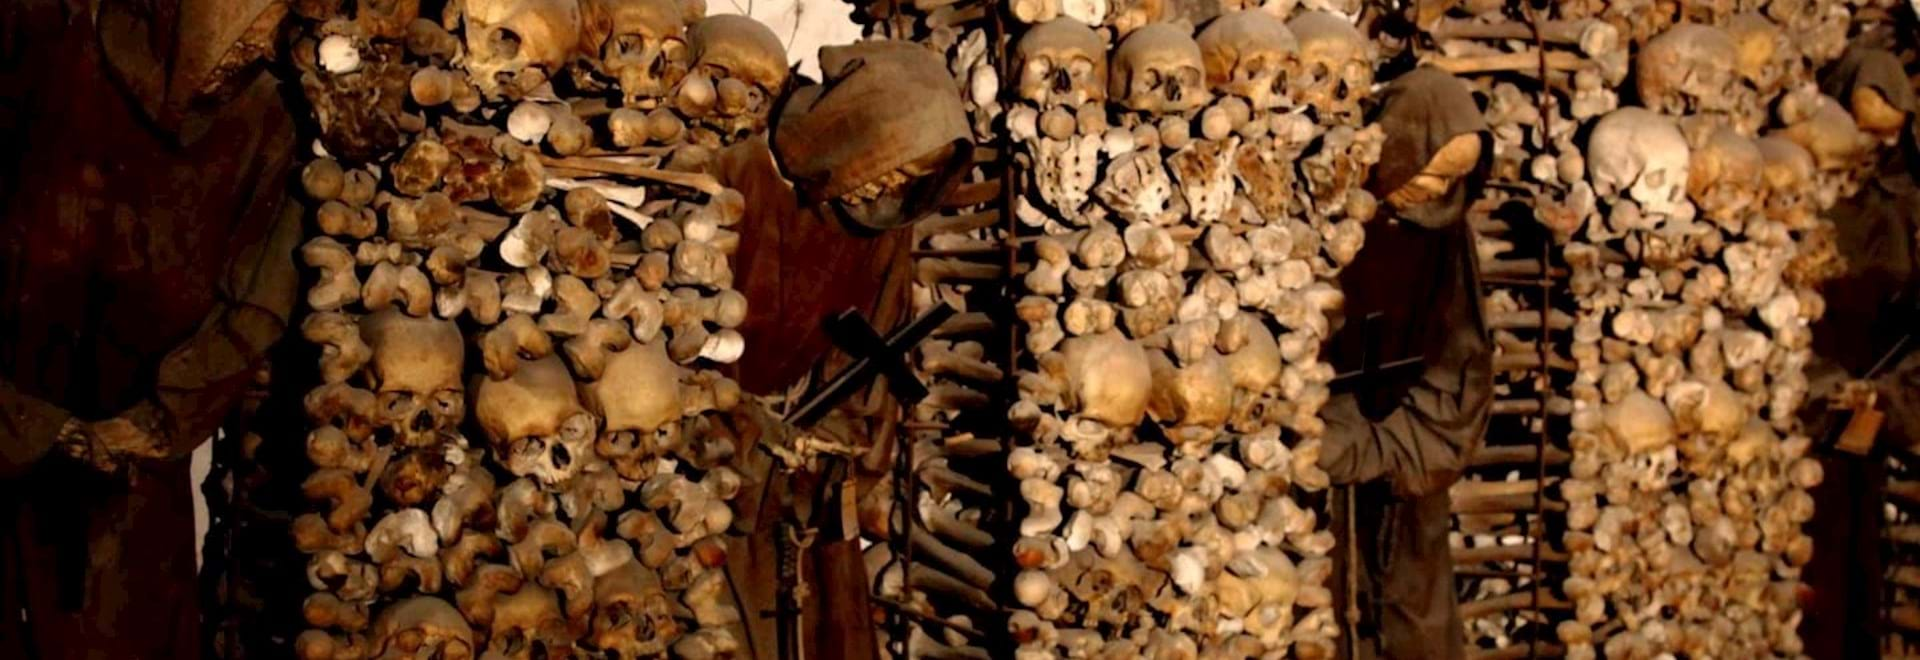 Skull and bones at the Catacombs of Rome